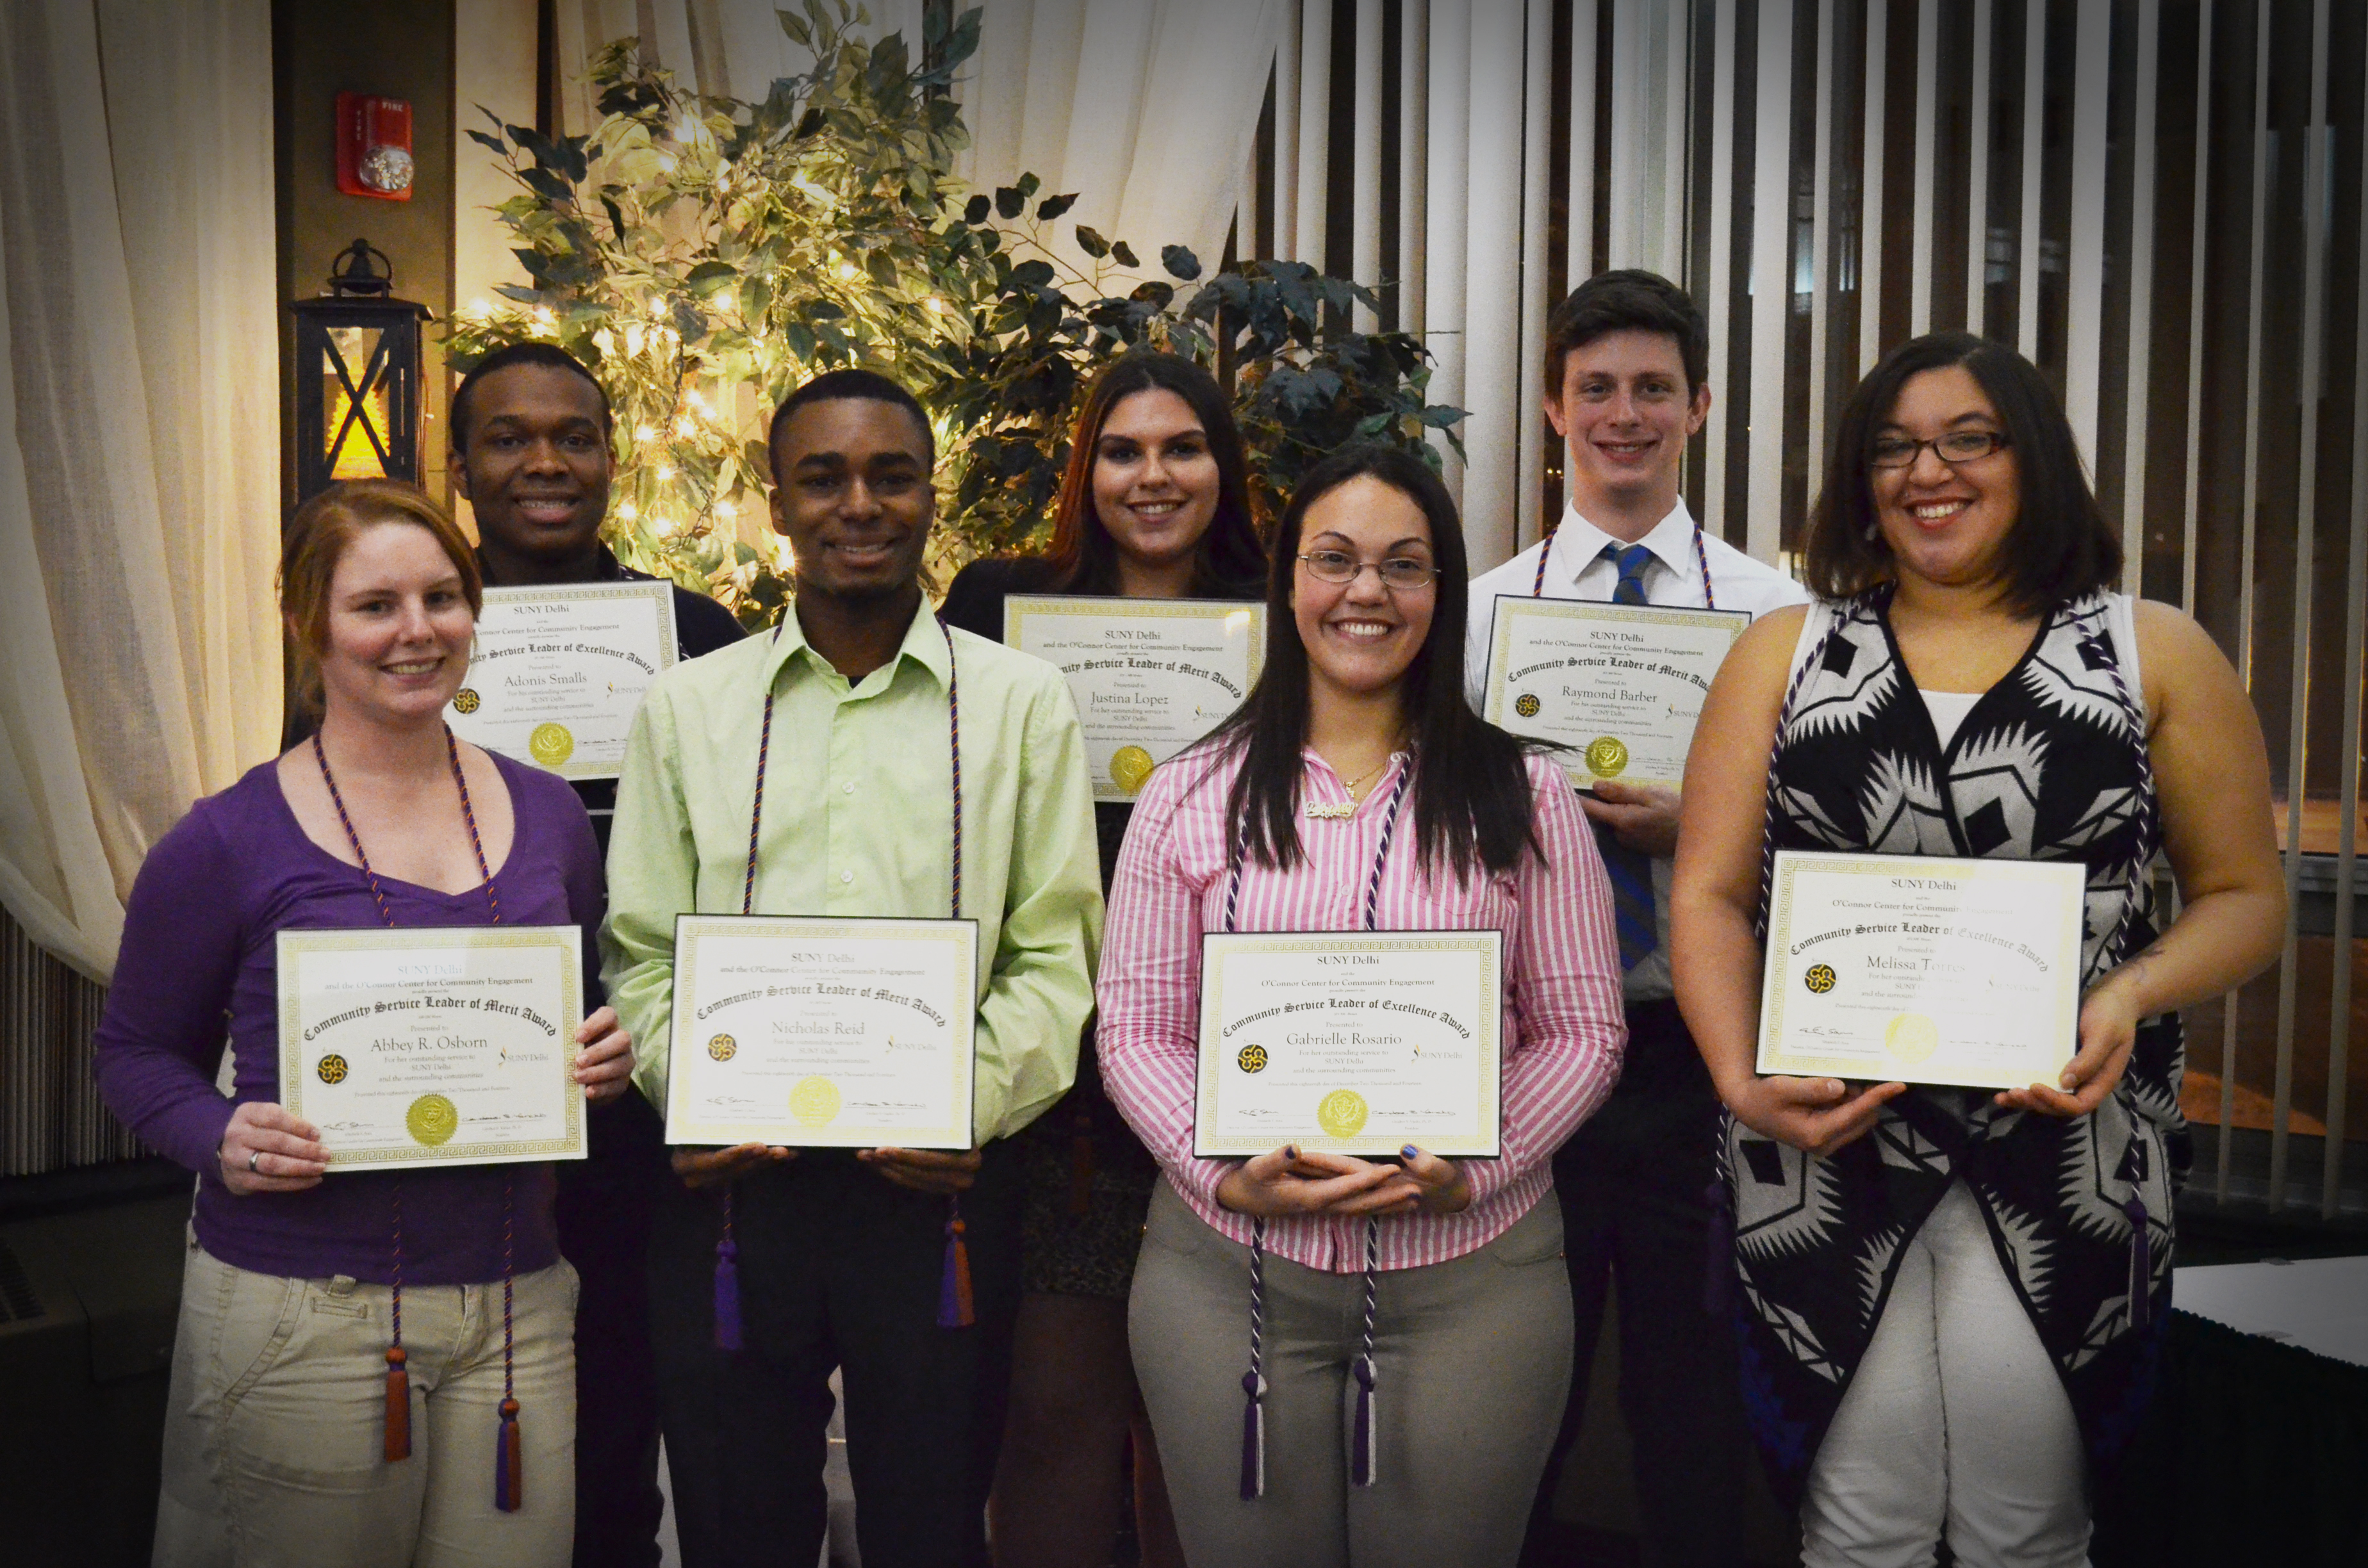 Community Services Awards and Students of the Year